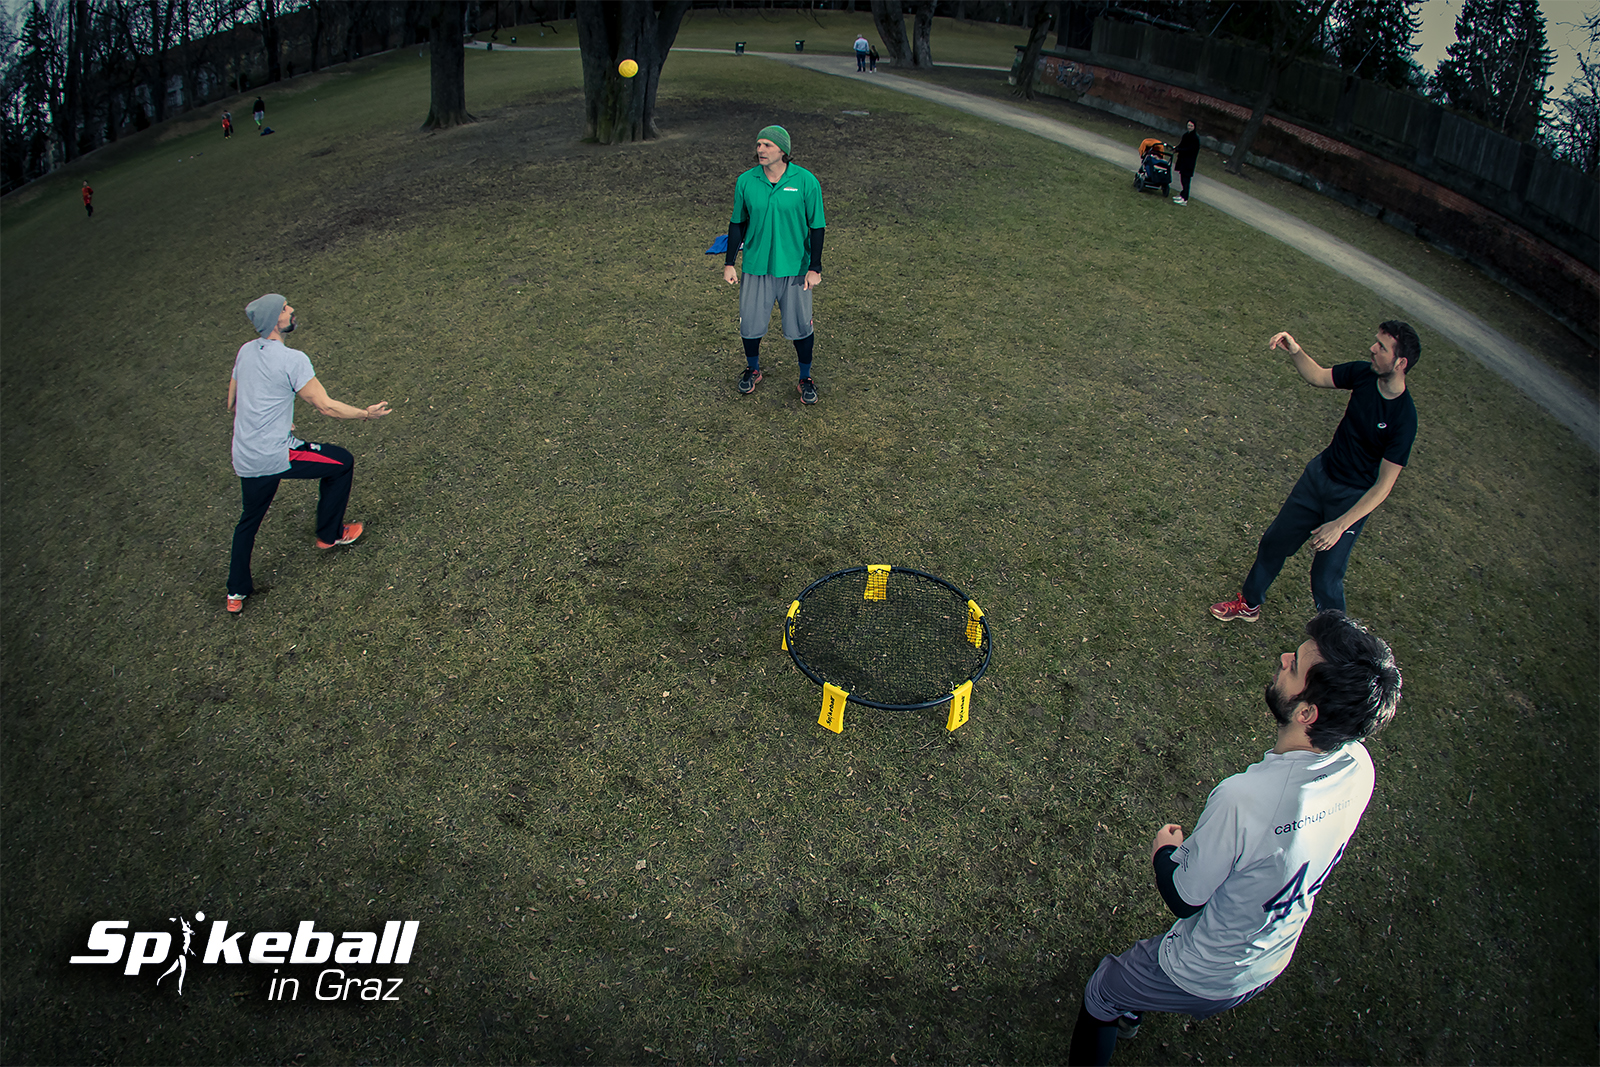 Spikeball in Graz